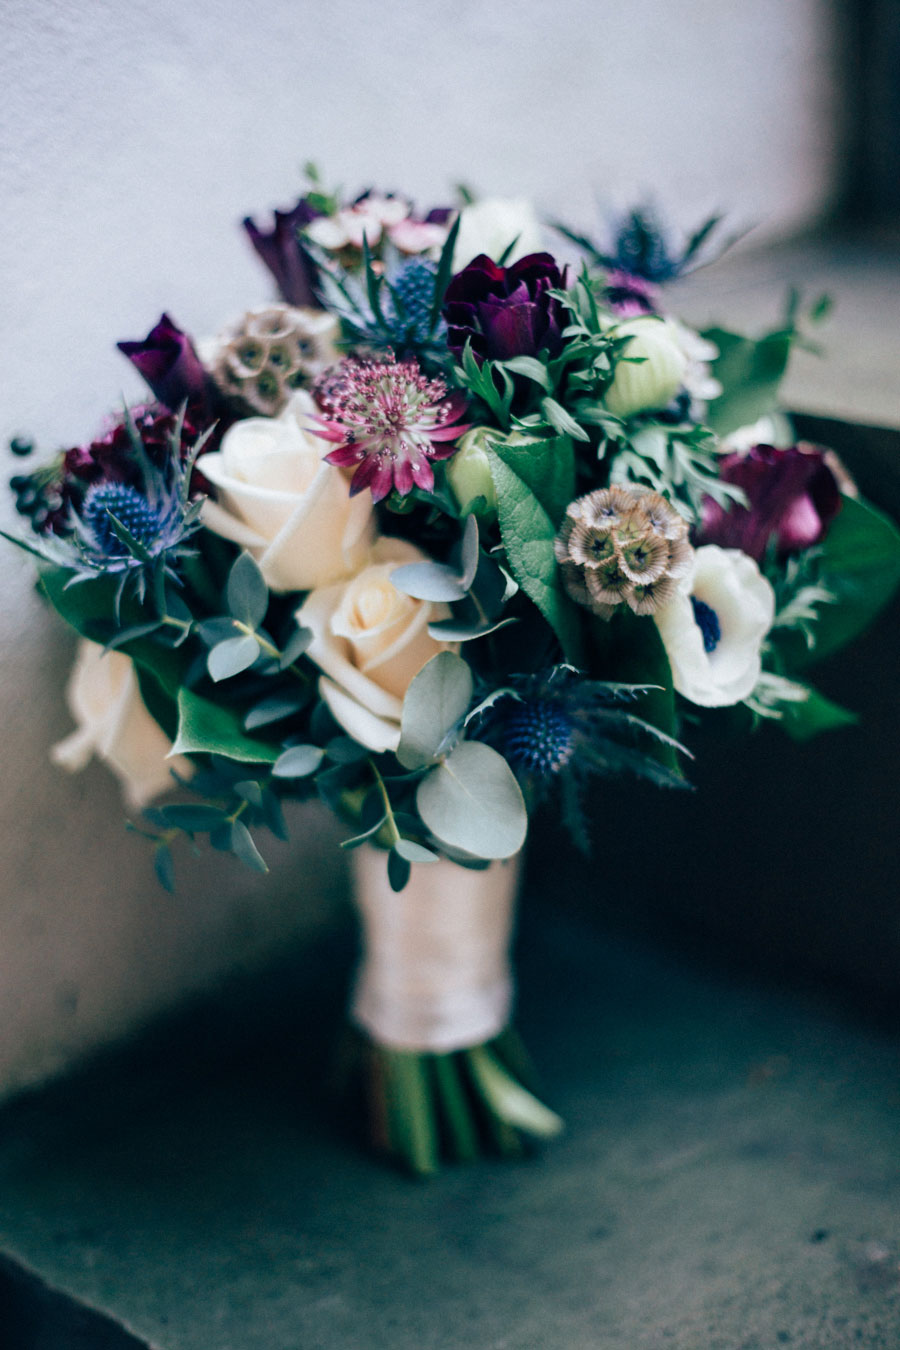 greenery and rose colorful festive winter wedding bouquets